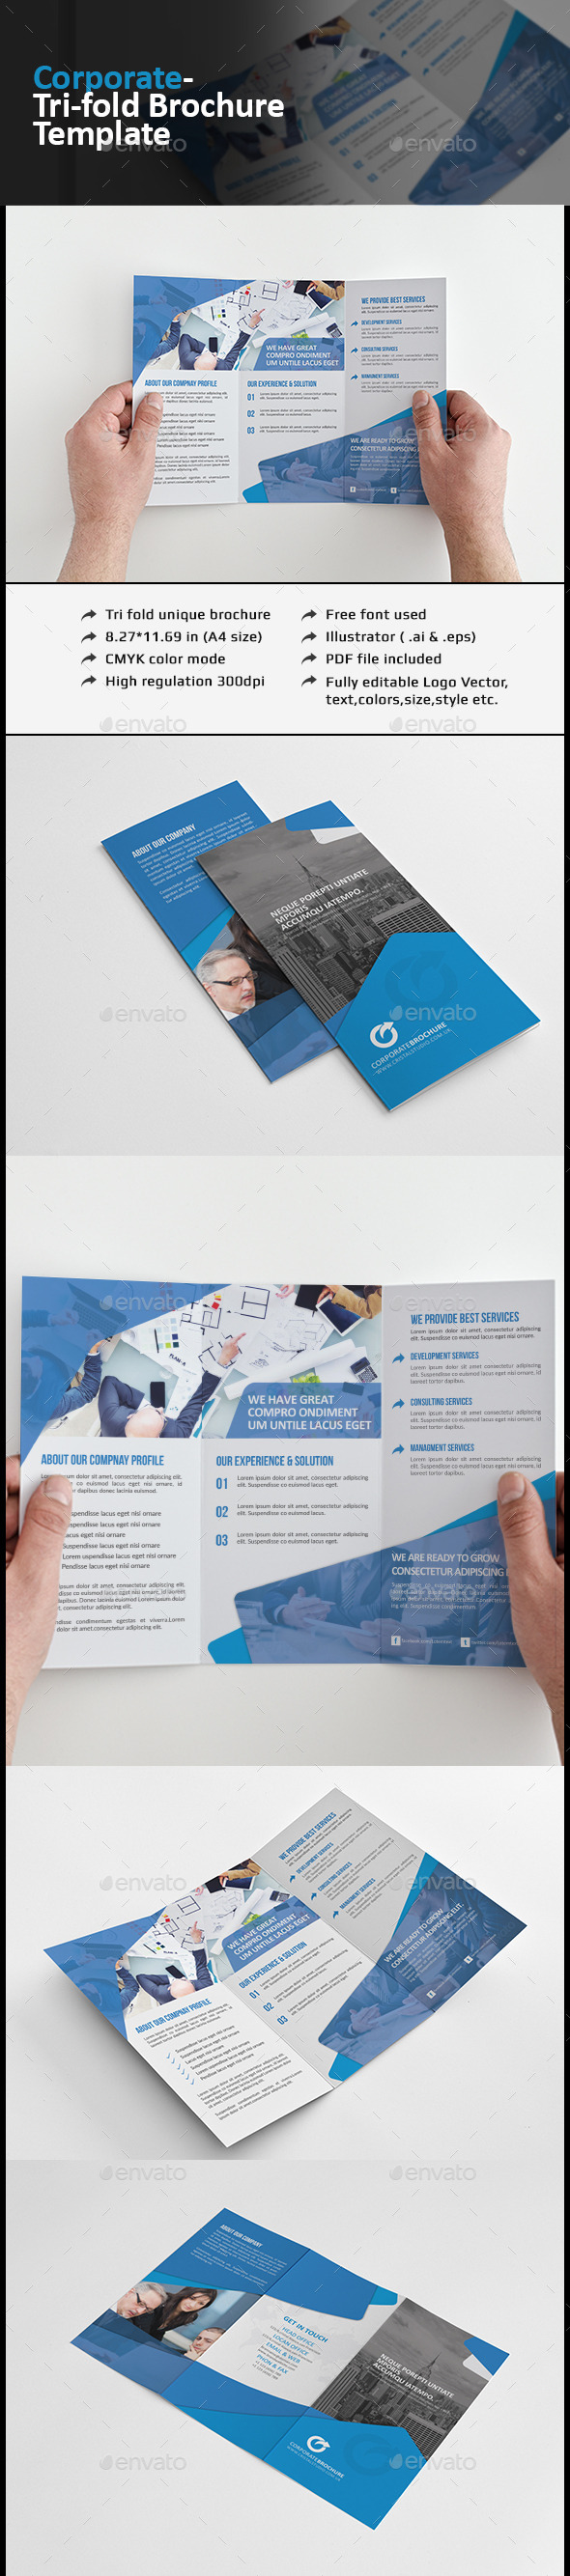 Corporate Tri-fold Brochure Template - Corporate Brochures